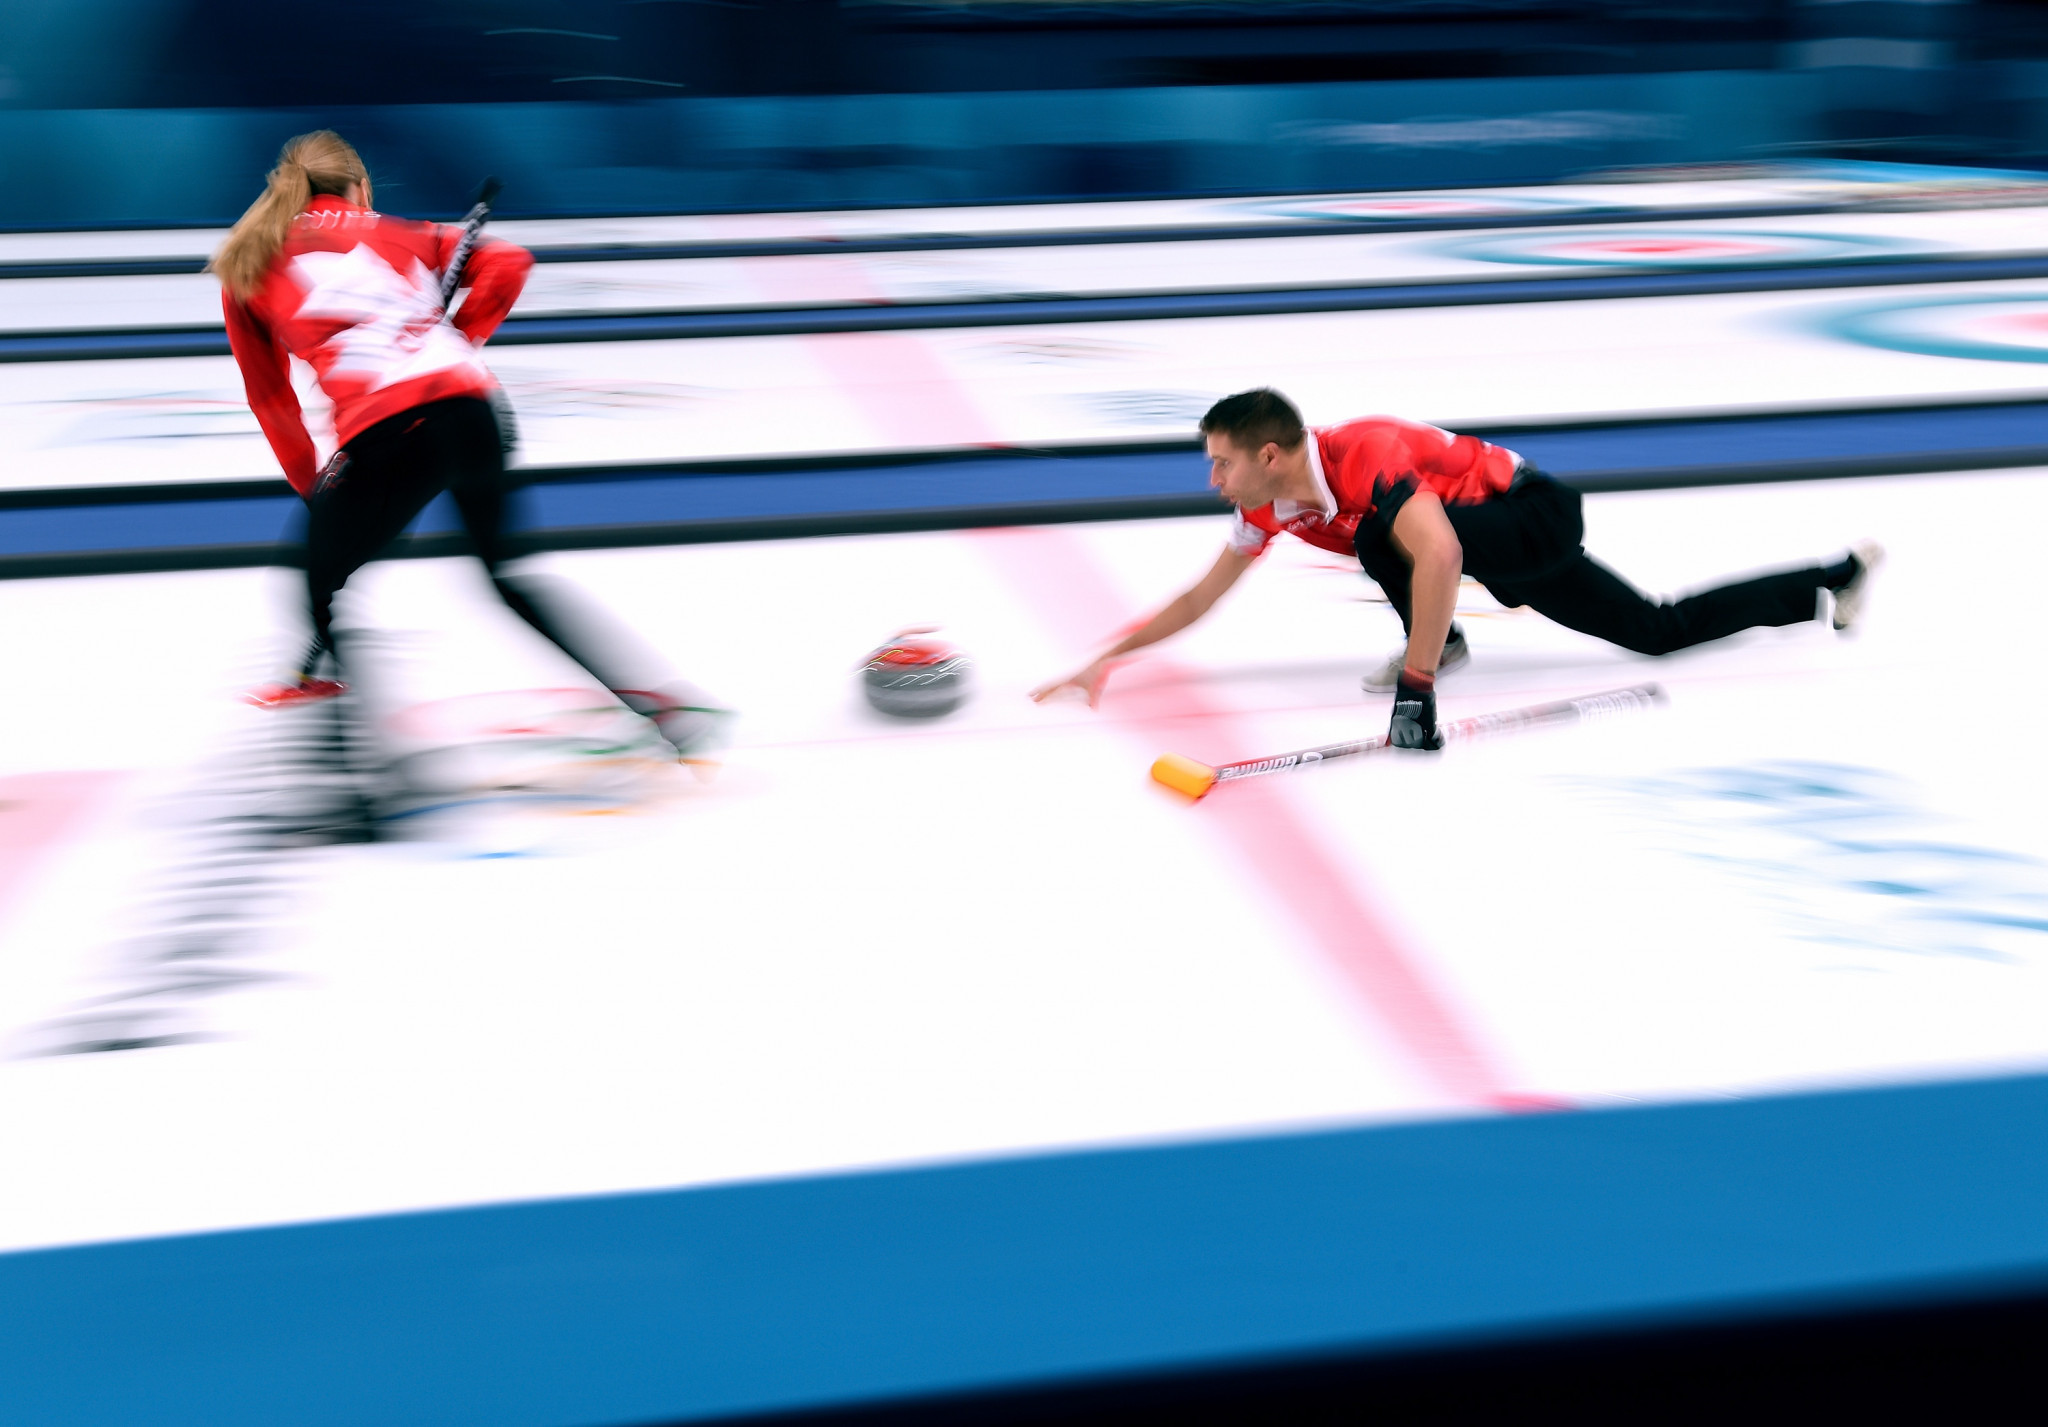 Mixed doubles curling made its Olympic debut at Pyeongchang 2018 ©Getty Images